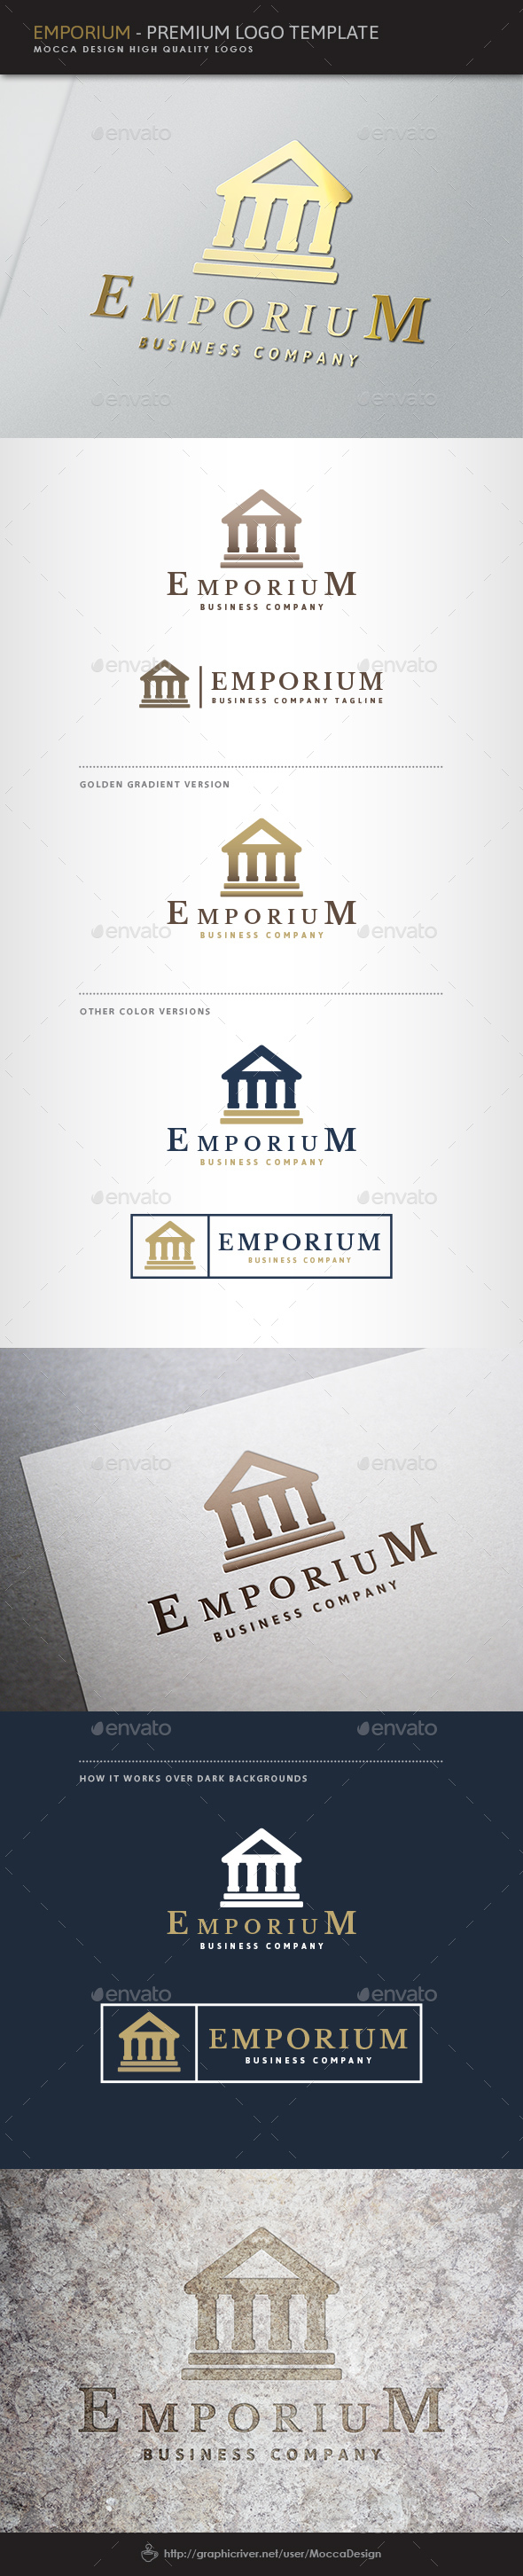 Emporium Logo - Buildings Logo Templates